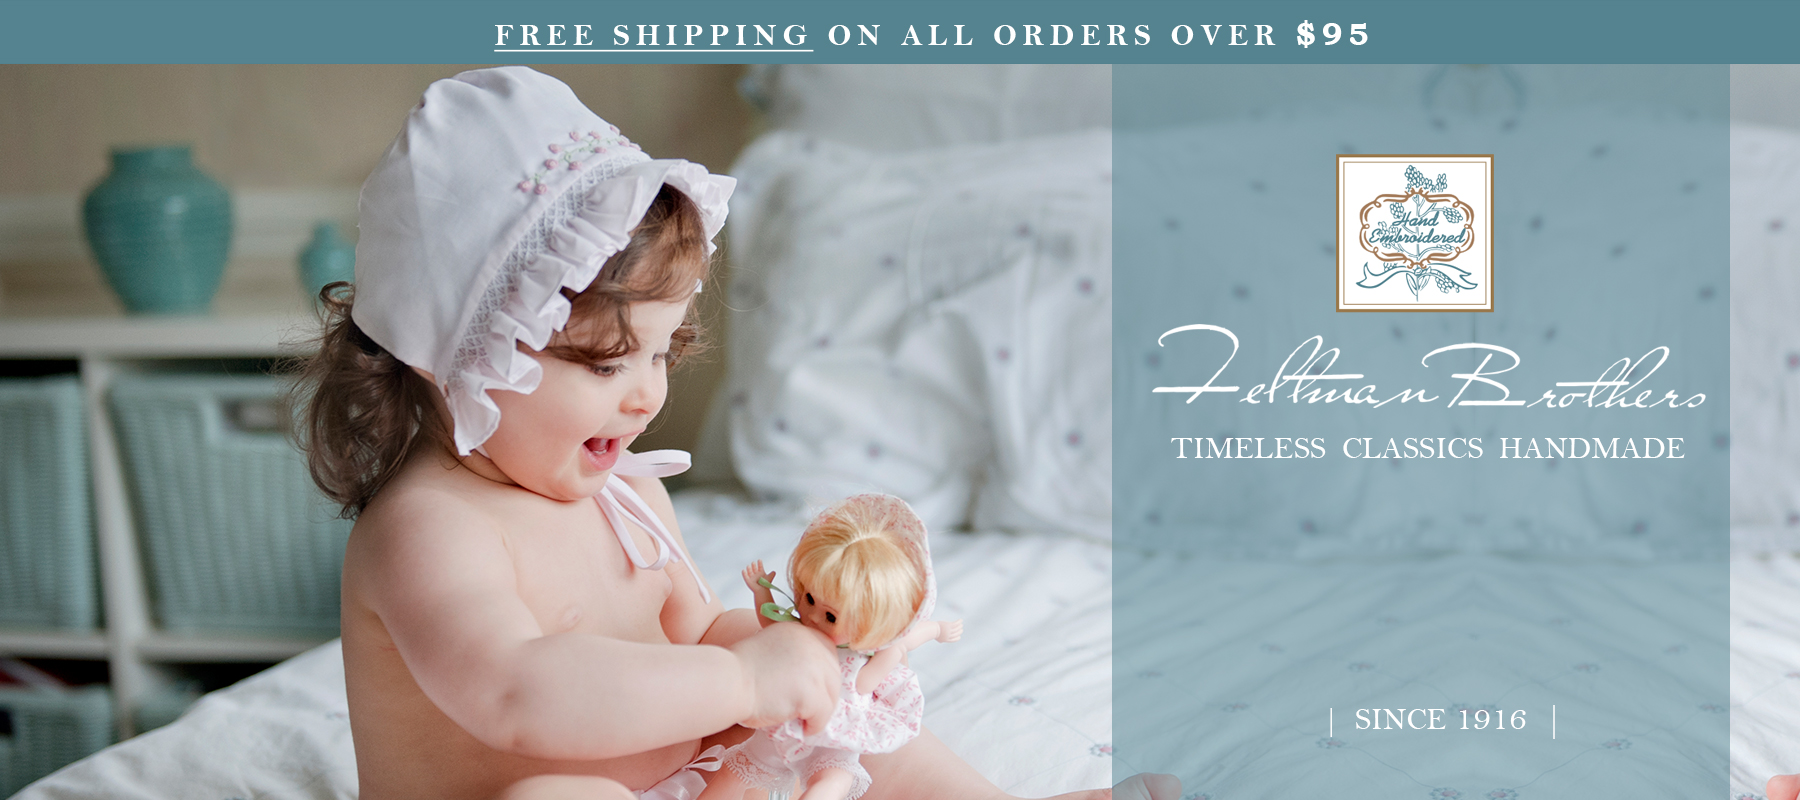 Feltman Brothers Vintage Baby Clothes Boys And Girls